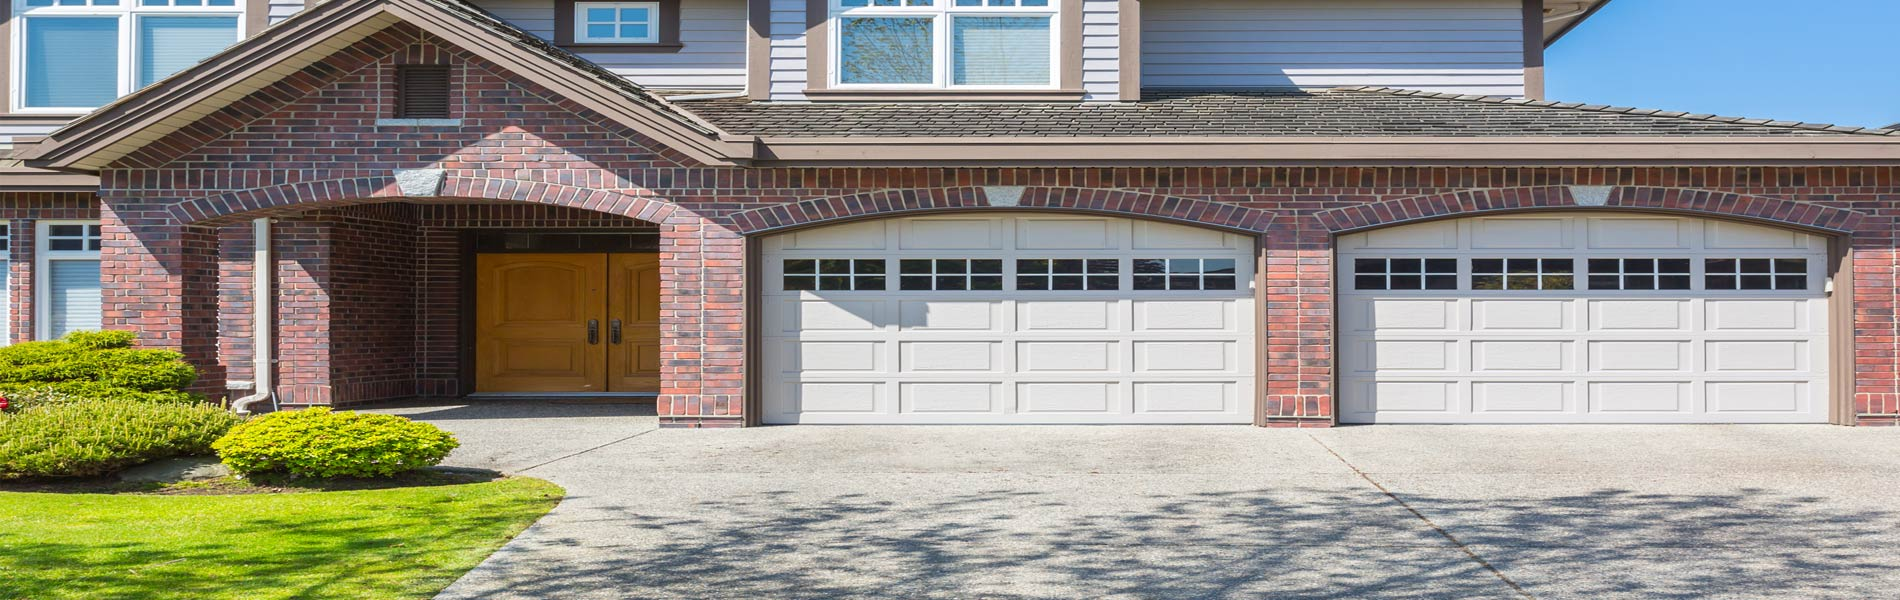 HighTech Garage Doors, San Jose, CA 408-872-6159